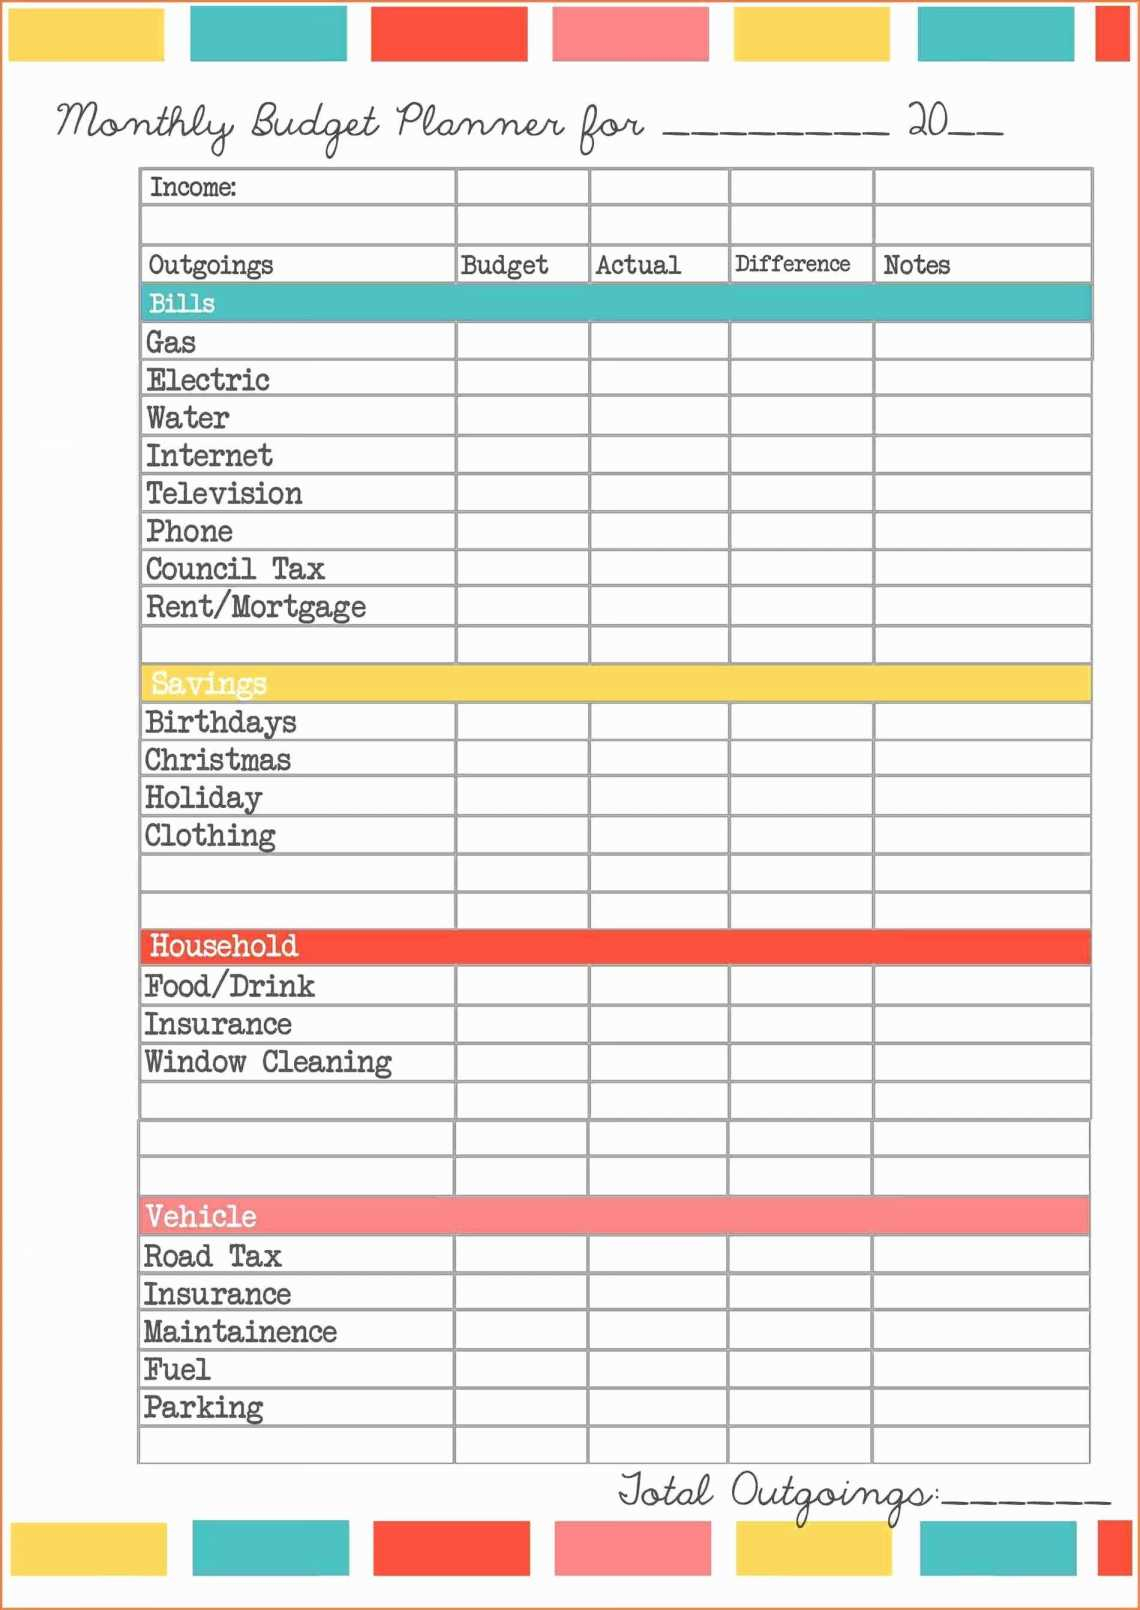 Free Excel Accounting Templates Small Business 2019 Accounting To Free Excel Accounting Templates For Small Businesses